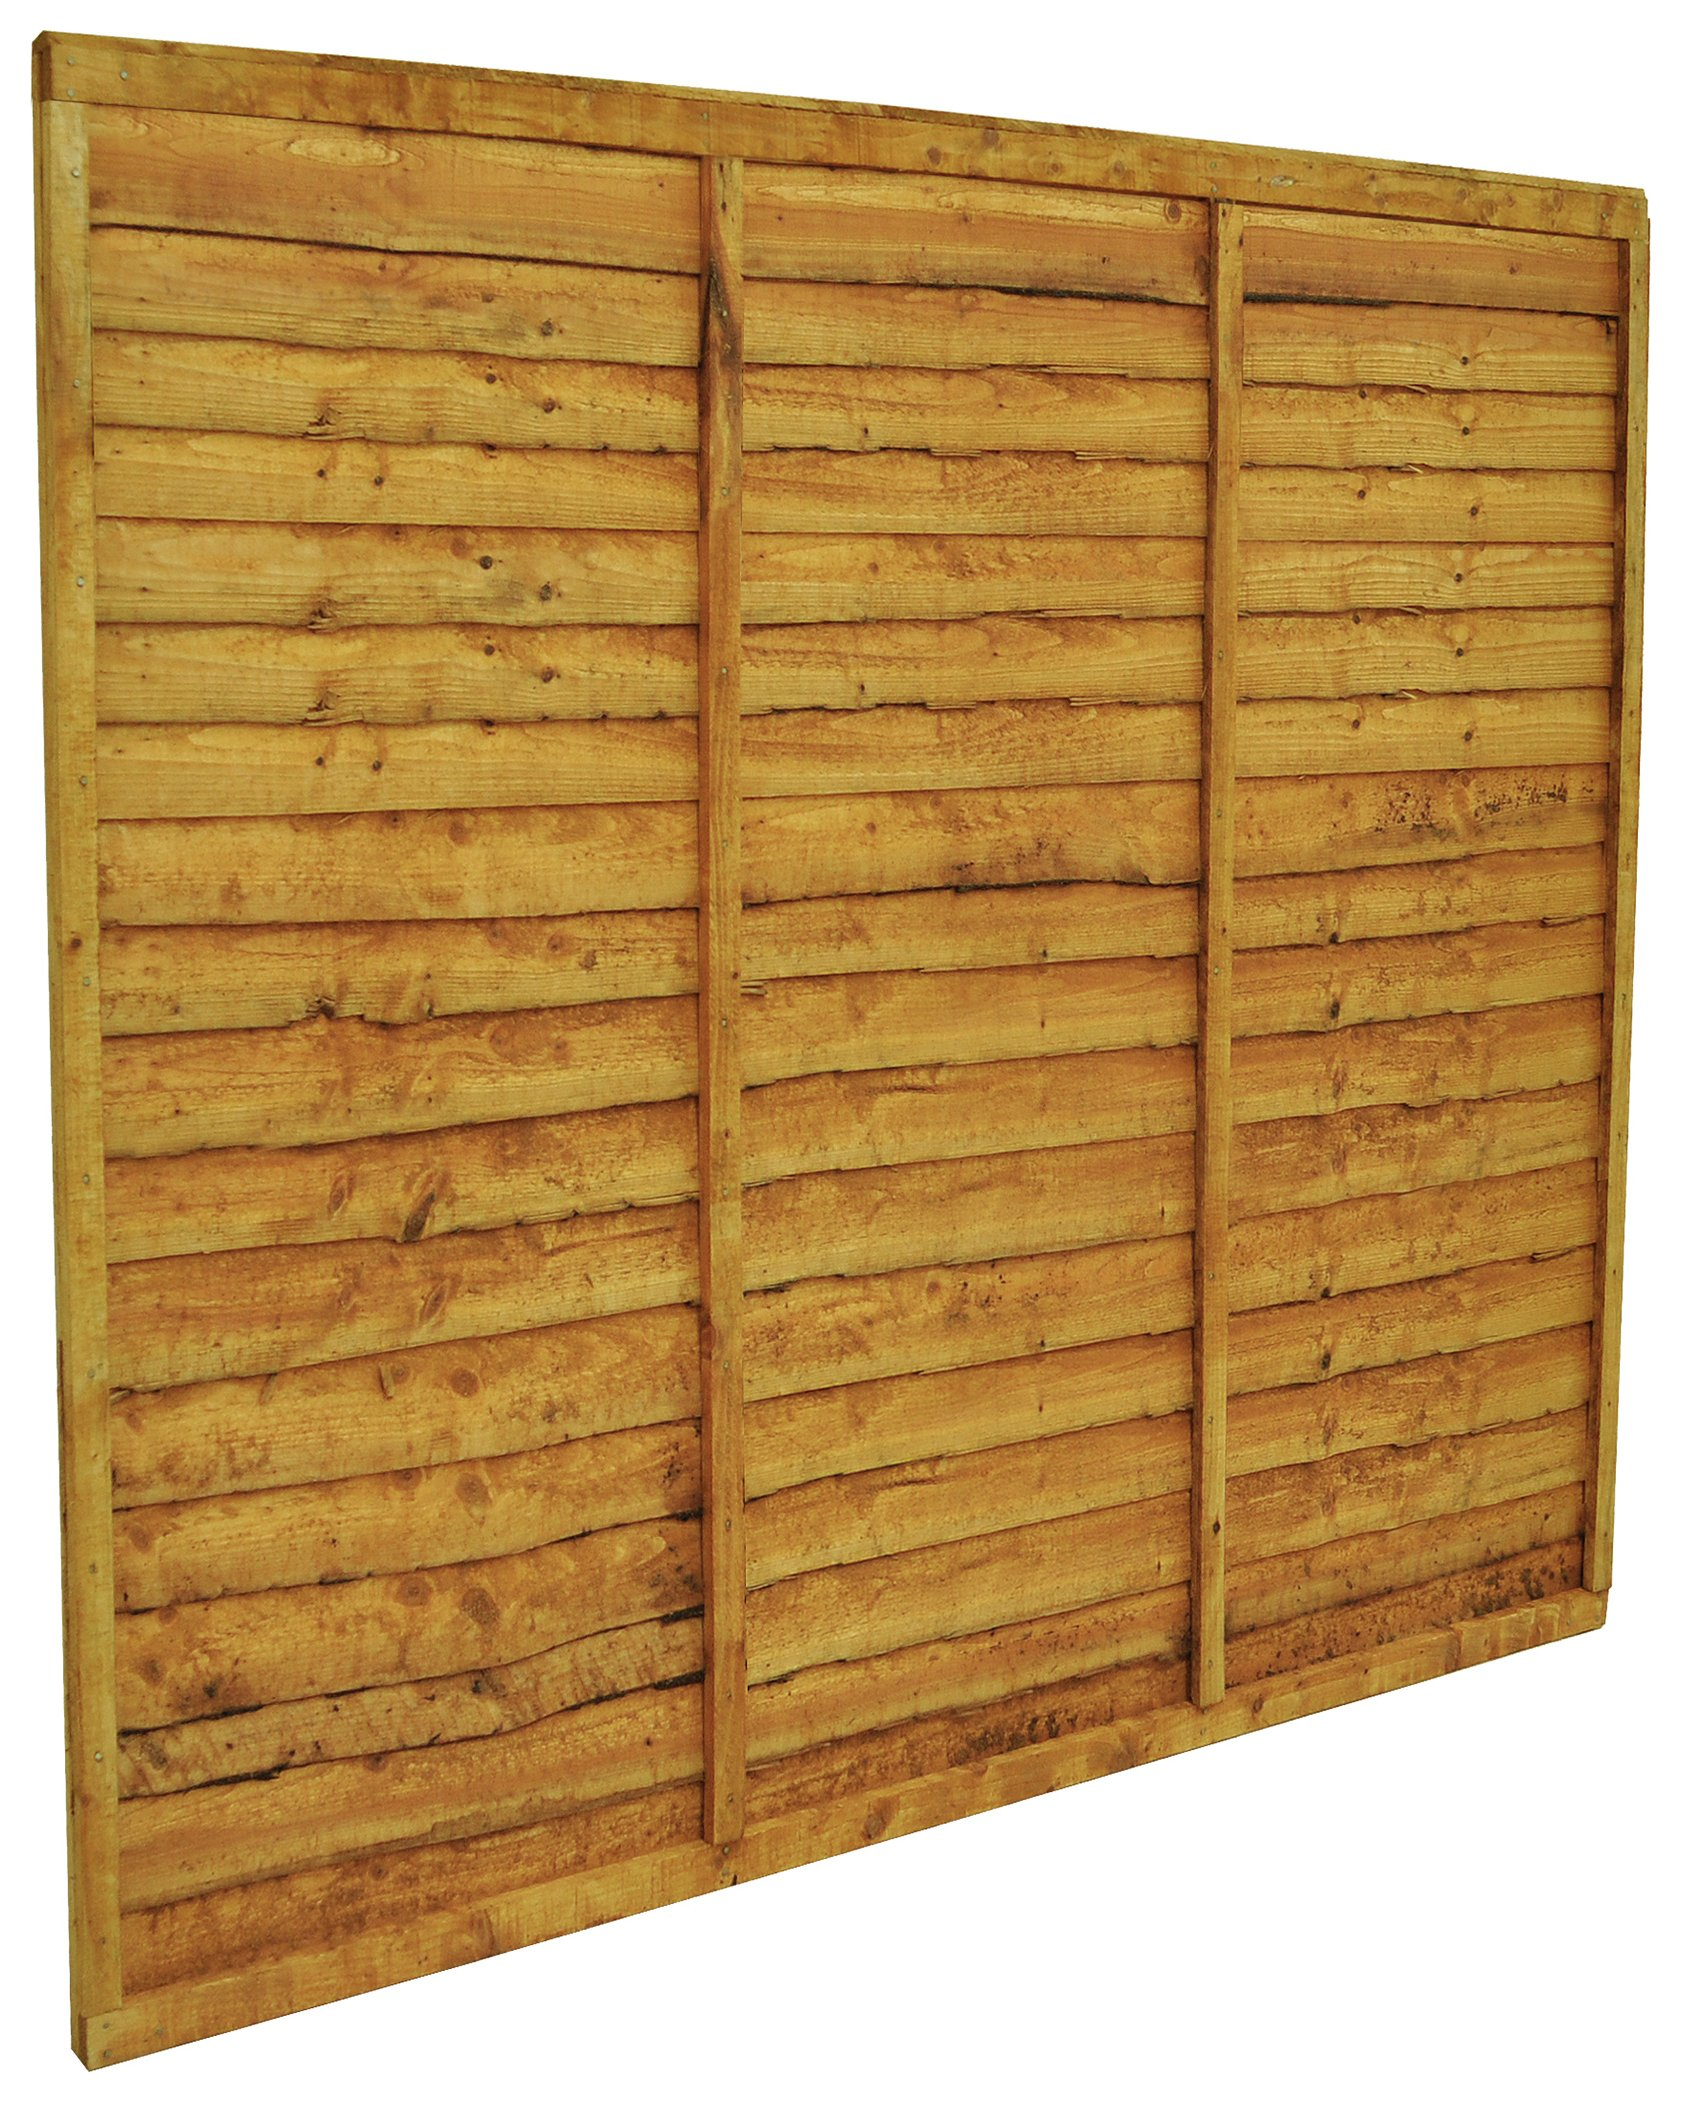 Forest Garden 1.5m Fence Panel - Pack of 9. lowest price